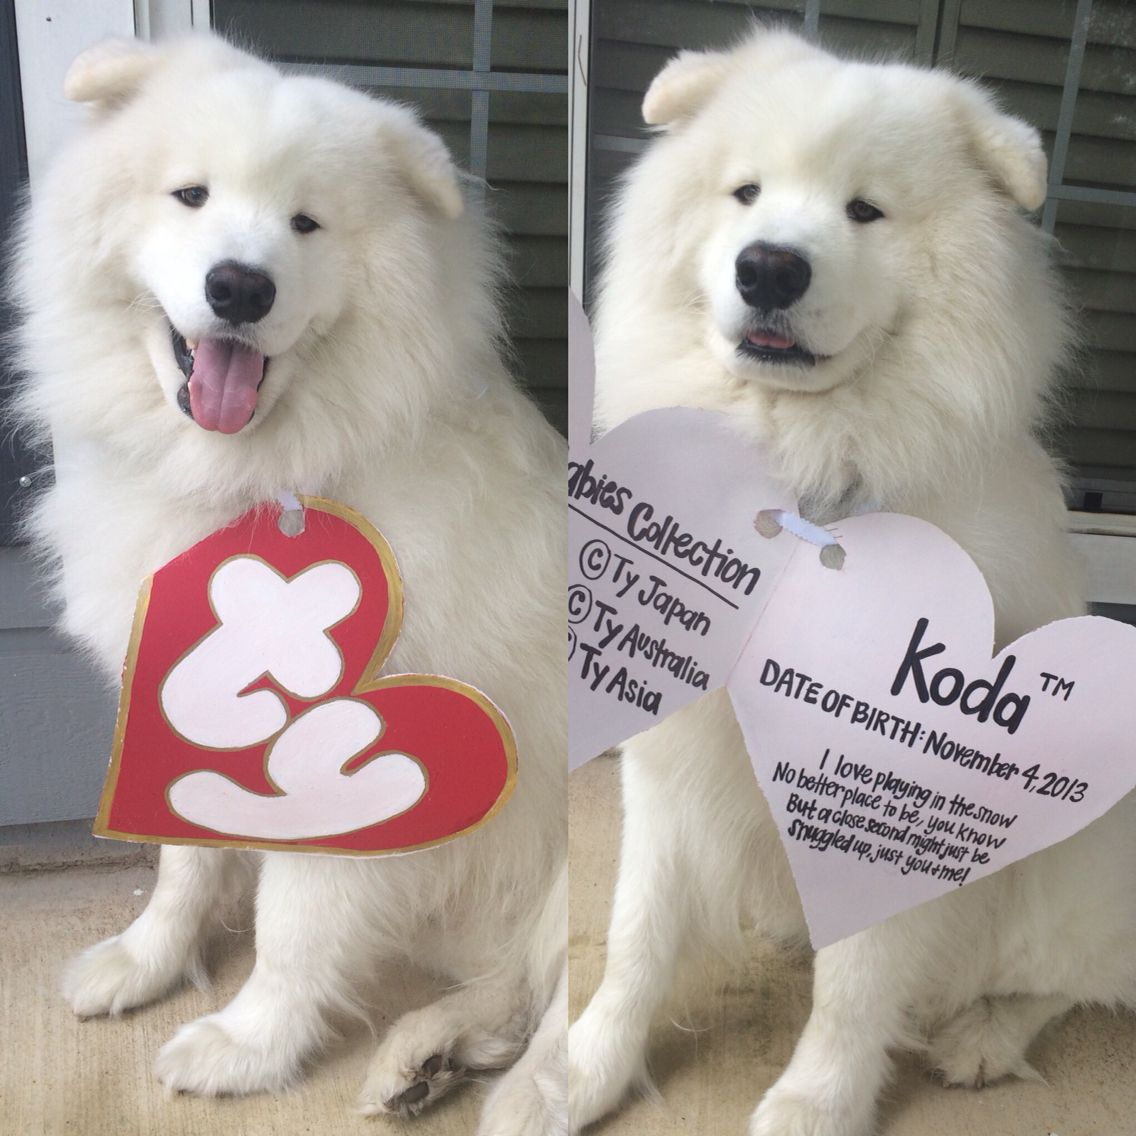 My dog kodathesamoyed in his beanie baby costume for halloween my dog kodathesamoyed in his beanie baby costume for halloween isnt he diy solutioingenieria Image collections